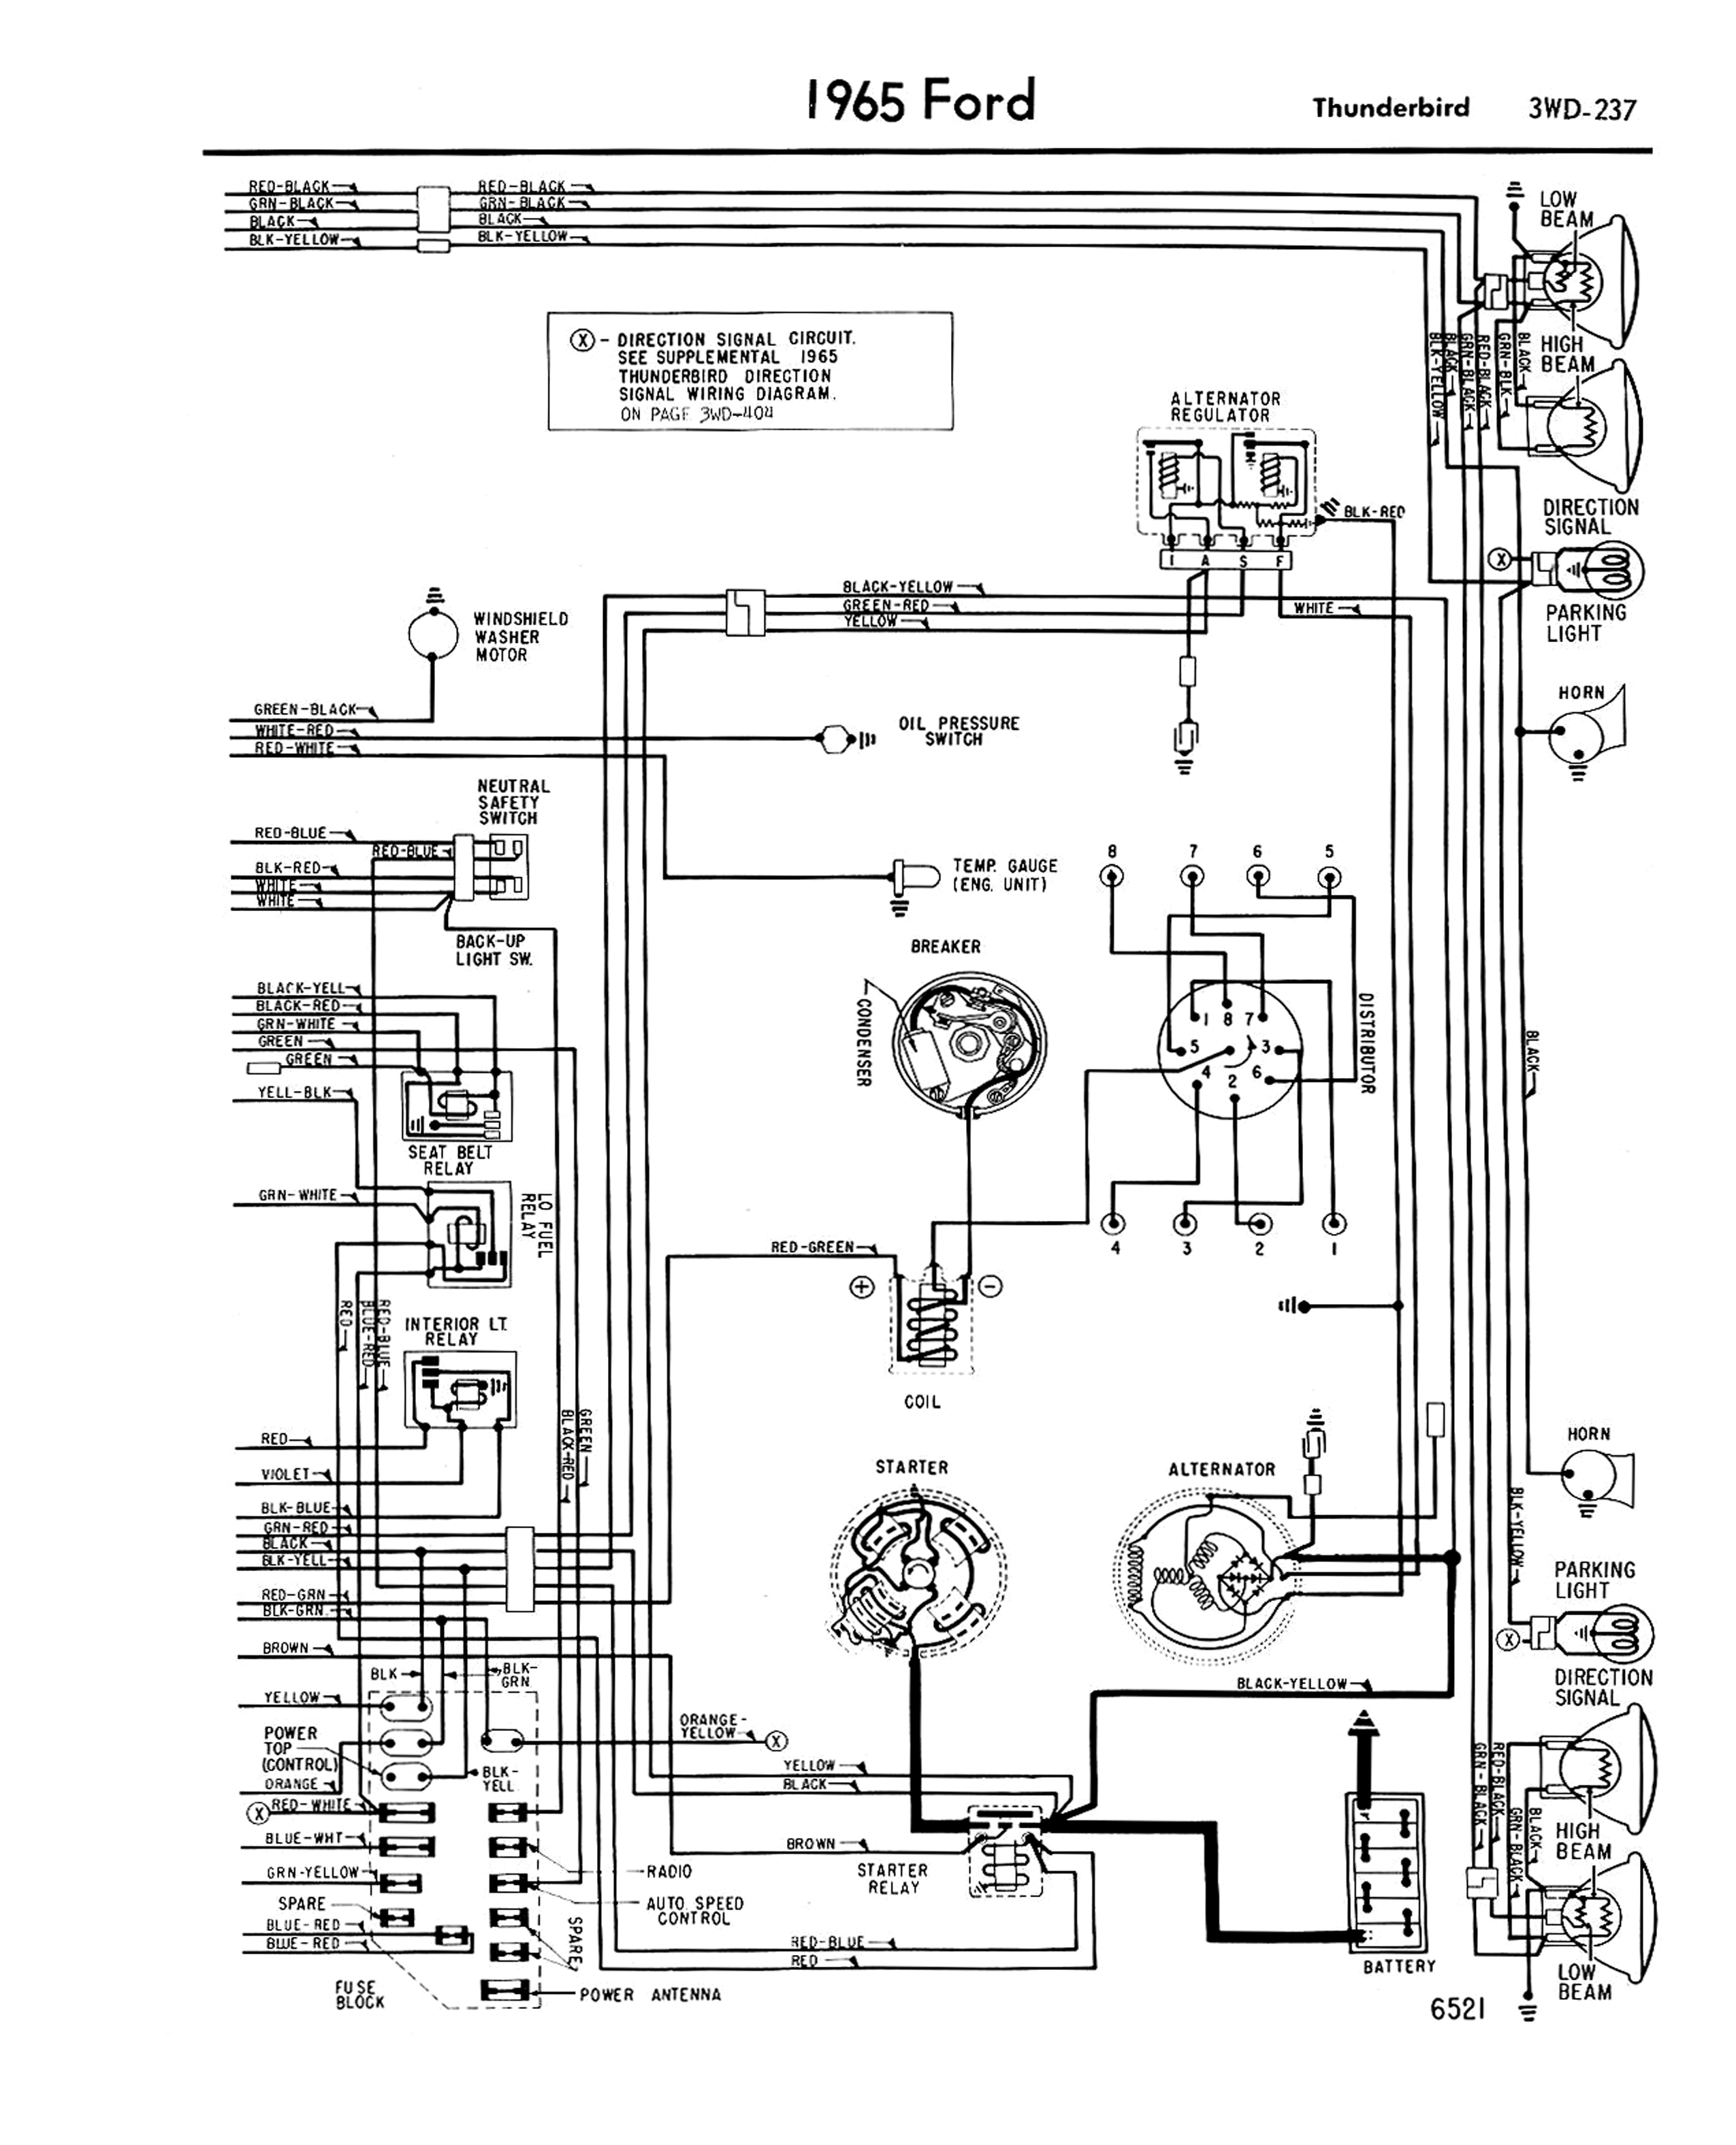 1958-68 Ford Electrical Schematics on fan clutch wiring diagram, a/c compressor wiring diagram, combination switch wiring diagram, power antenna wiring diagram, turn signal light switch, window motor wiring diagram, neutral safety switch wiring diagram, camshaft position sensor wiring diagram, turn signal light cover, throttle position sensor wiring diagram, speedometer wiring diagram, door lock switch wiring diagram, speed sensor wiring diagram, horn wiring diagram, turn signal wiring harness diagram, fuse wiring diagram, battery wiring diagram, dimmer switch wiring diagram, headlight wiring diagram, ignition relay wiring diagram,